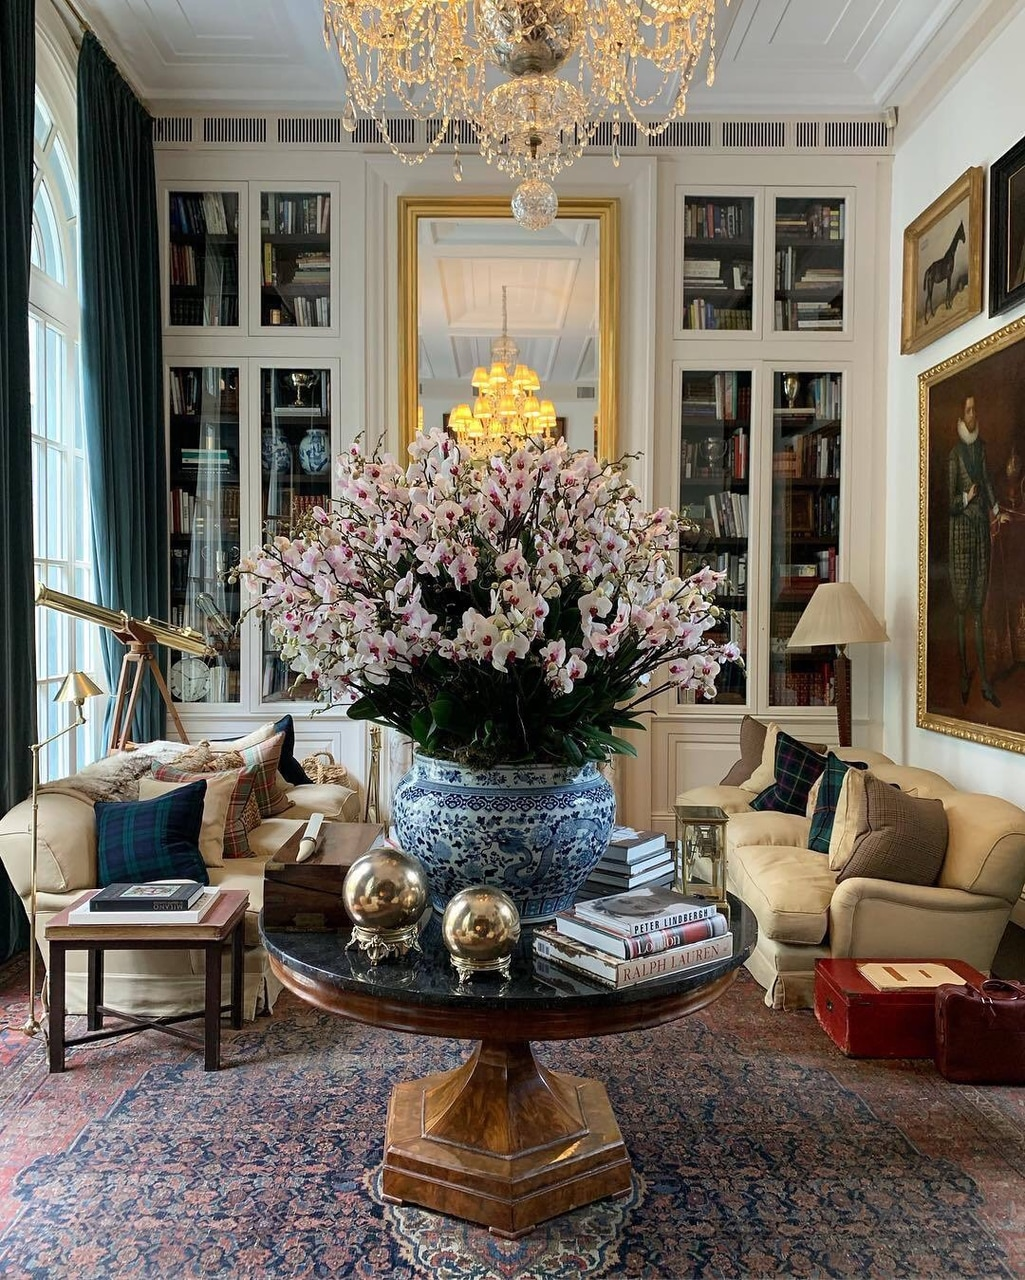 art, books, classy and details